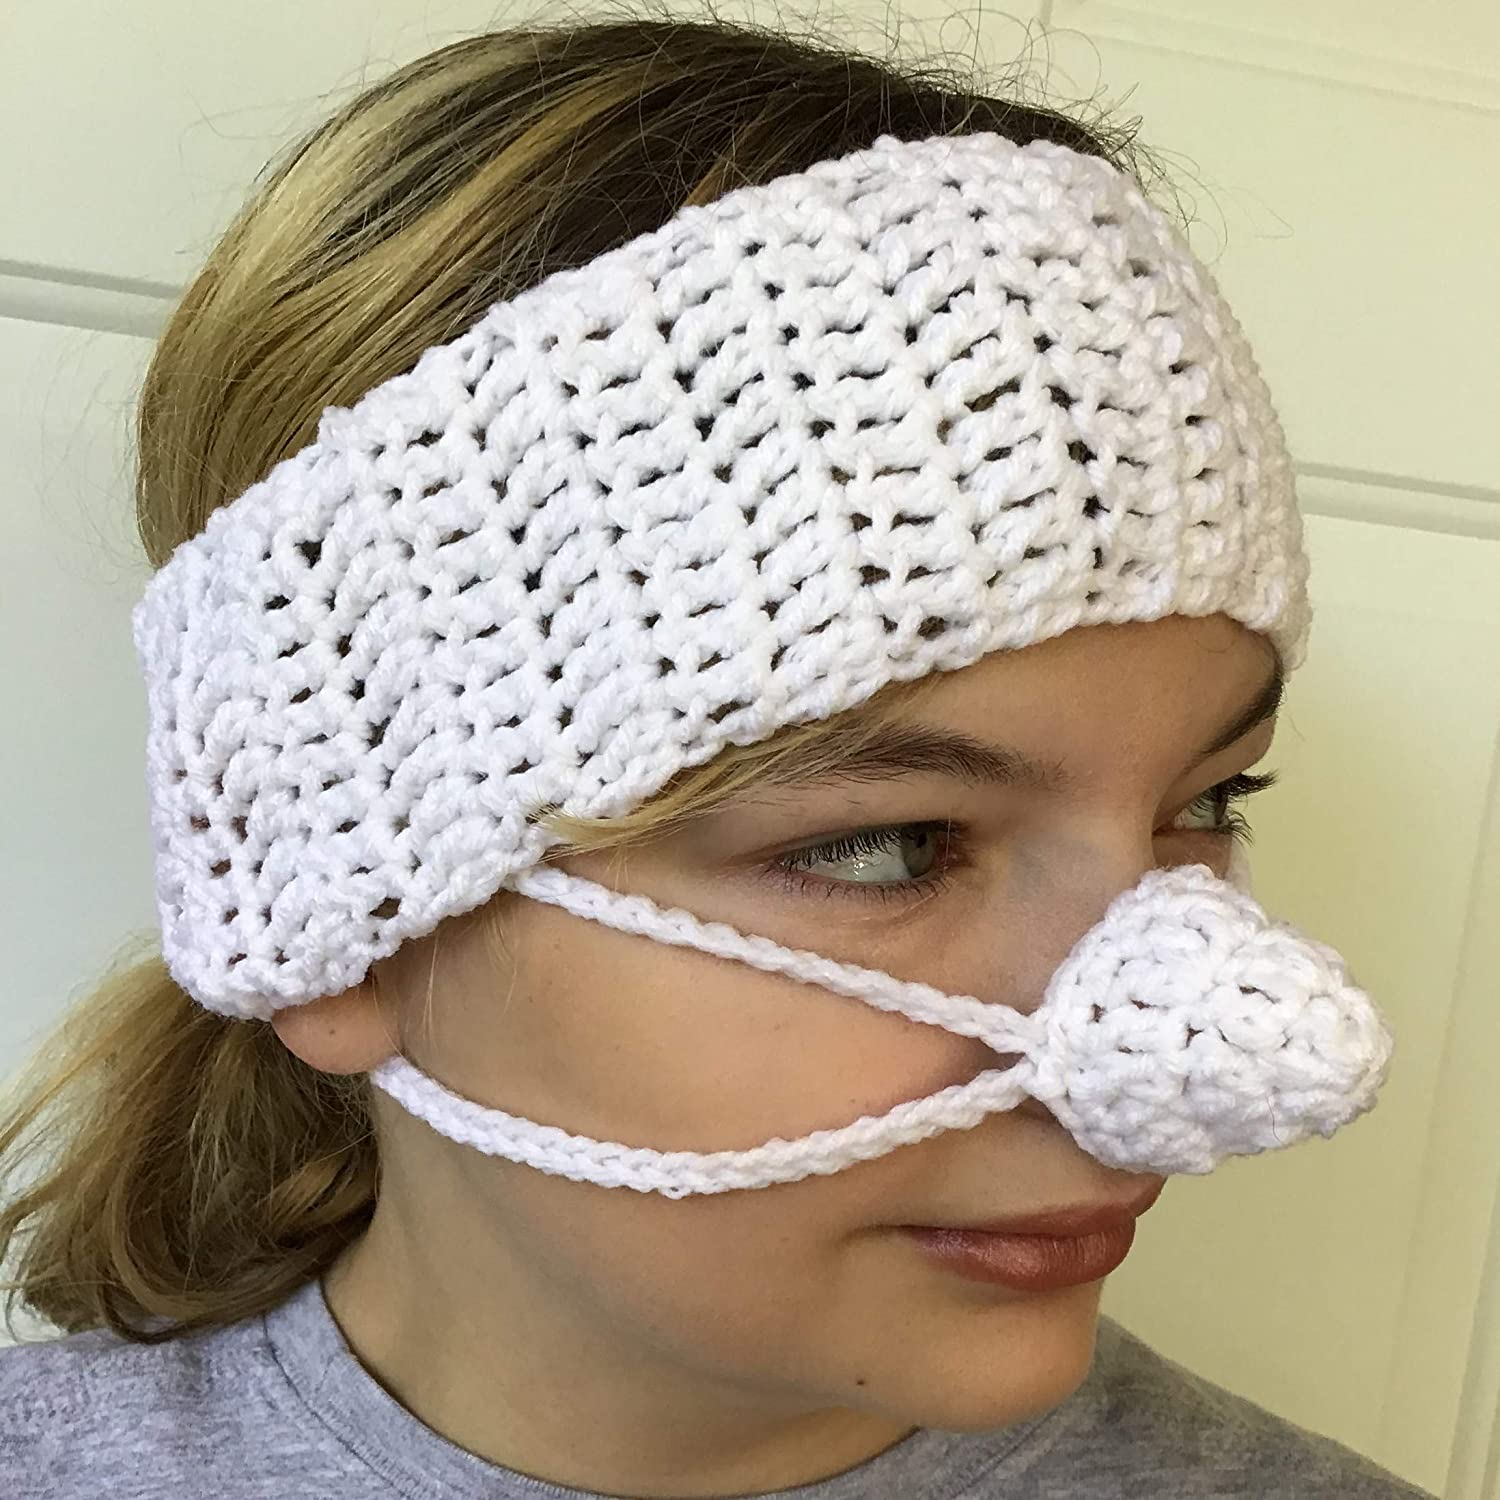 White Ear Warmer Nose Warmer Set by Aunt Marty